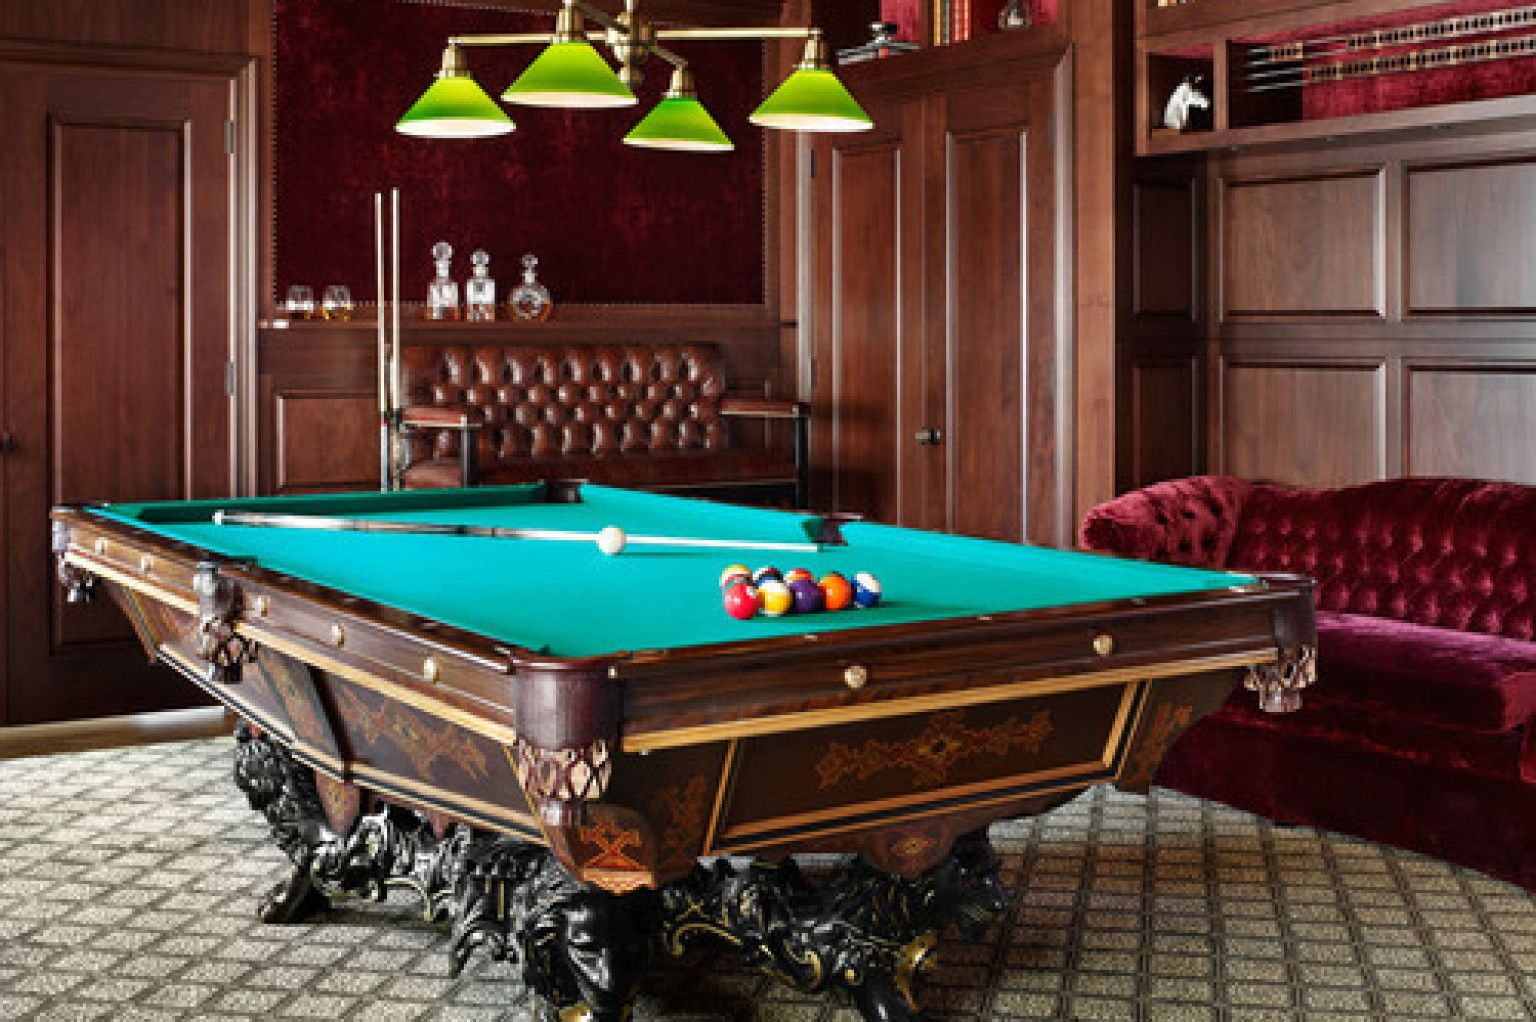 PHOTOS 15 Billiards Rooms Wed Love In Our Home